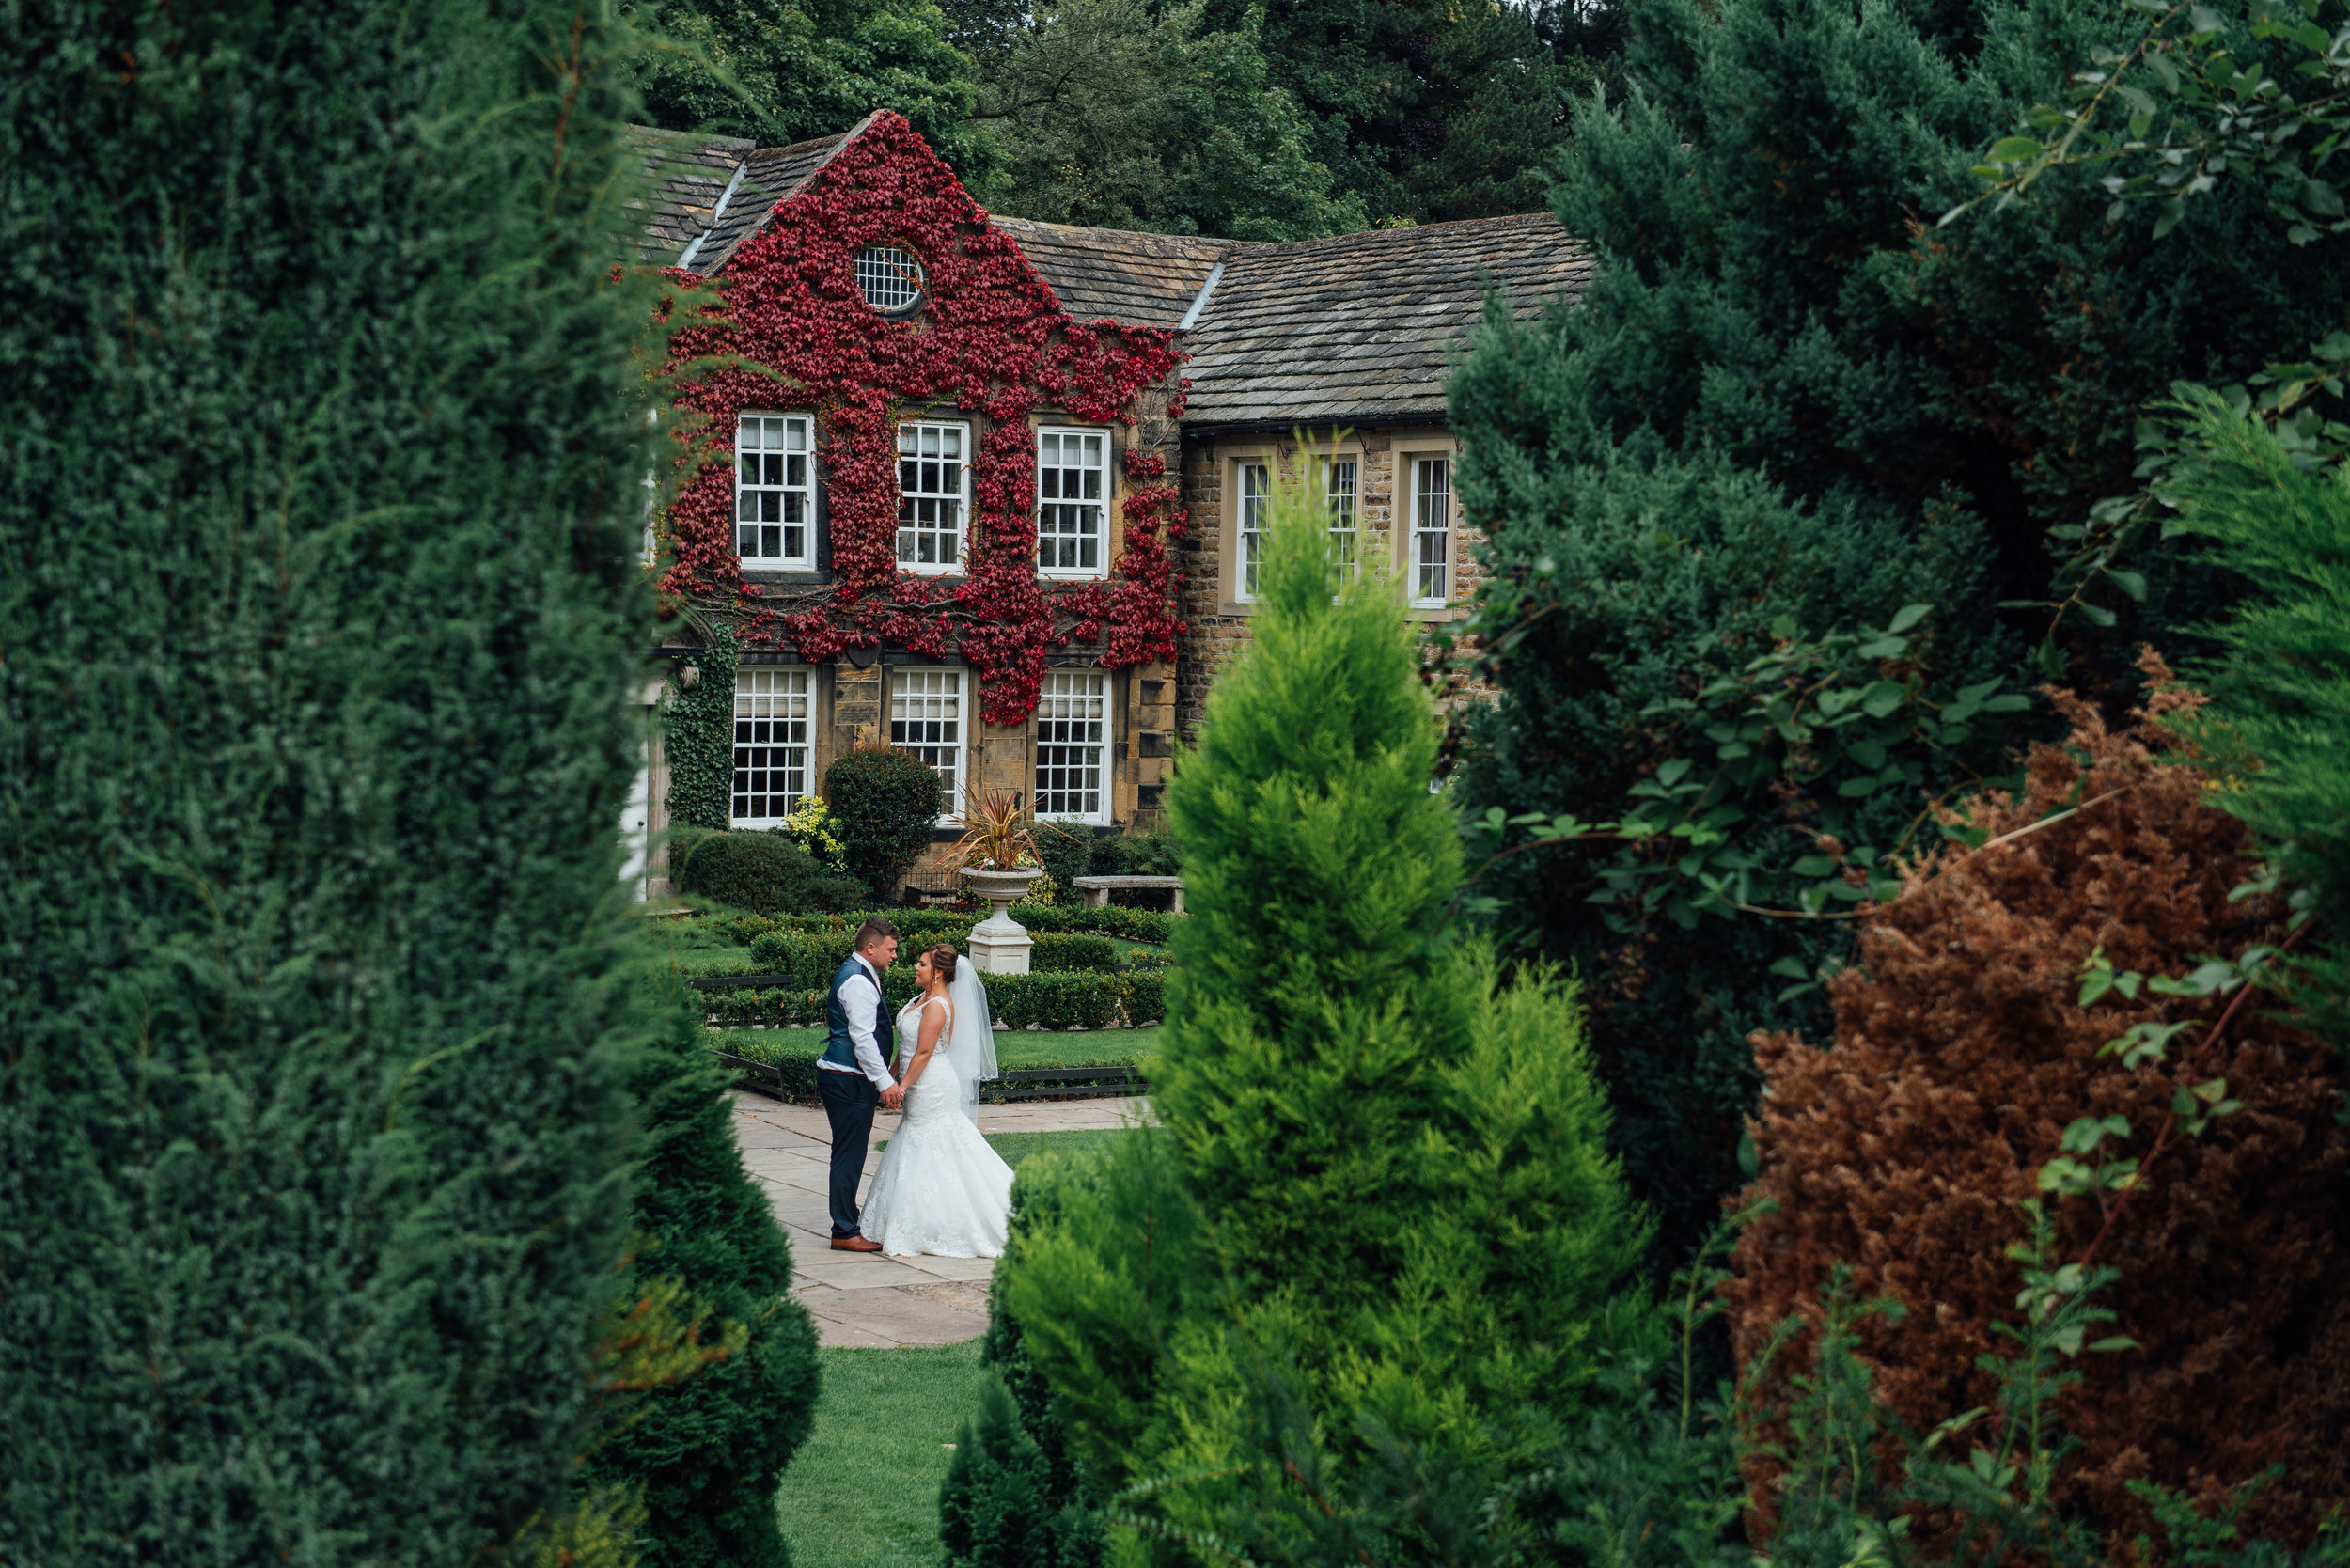 Wedding at Whitley Hall Hotel, Sheffield.